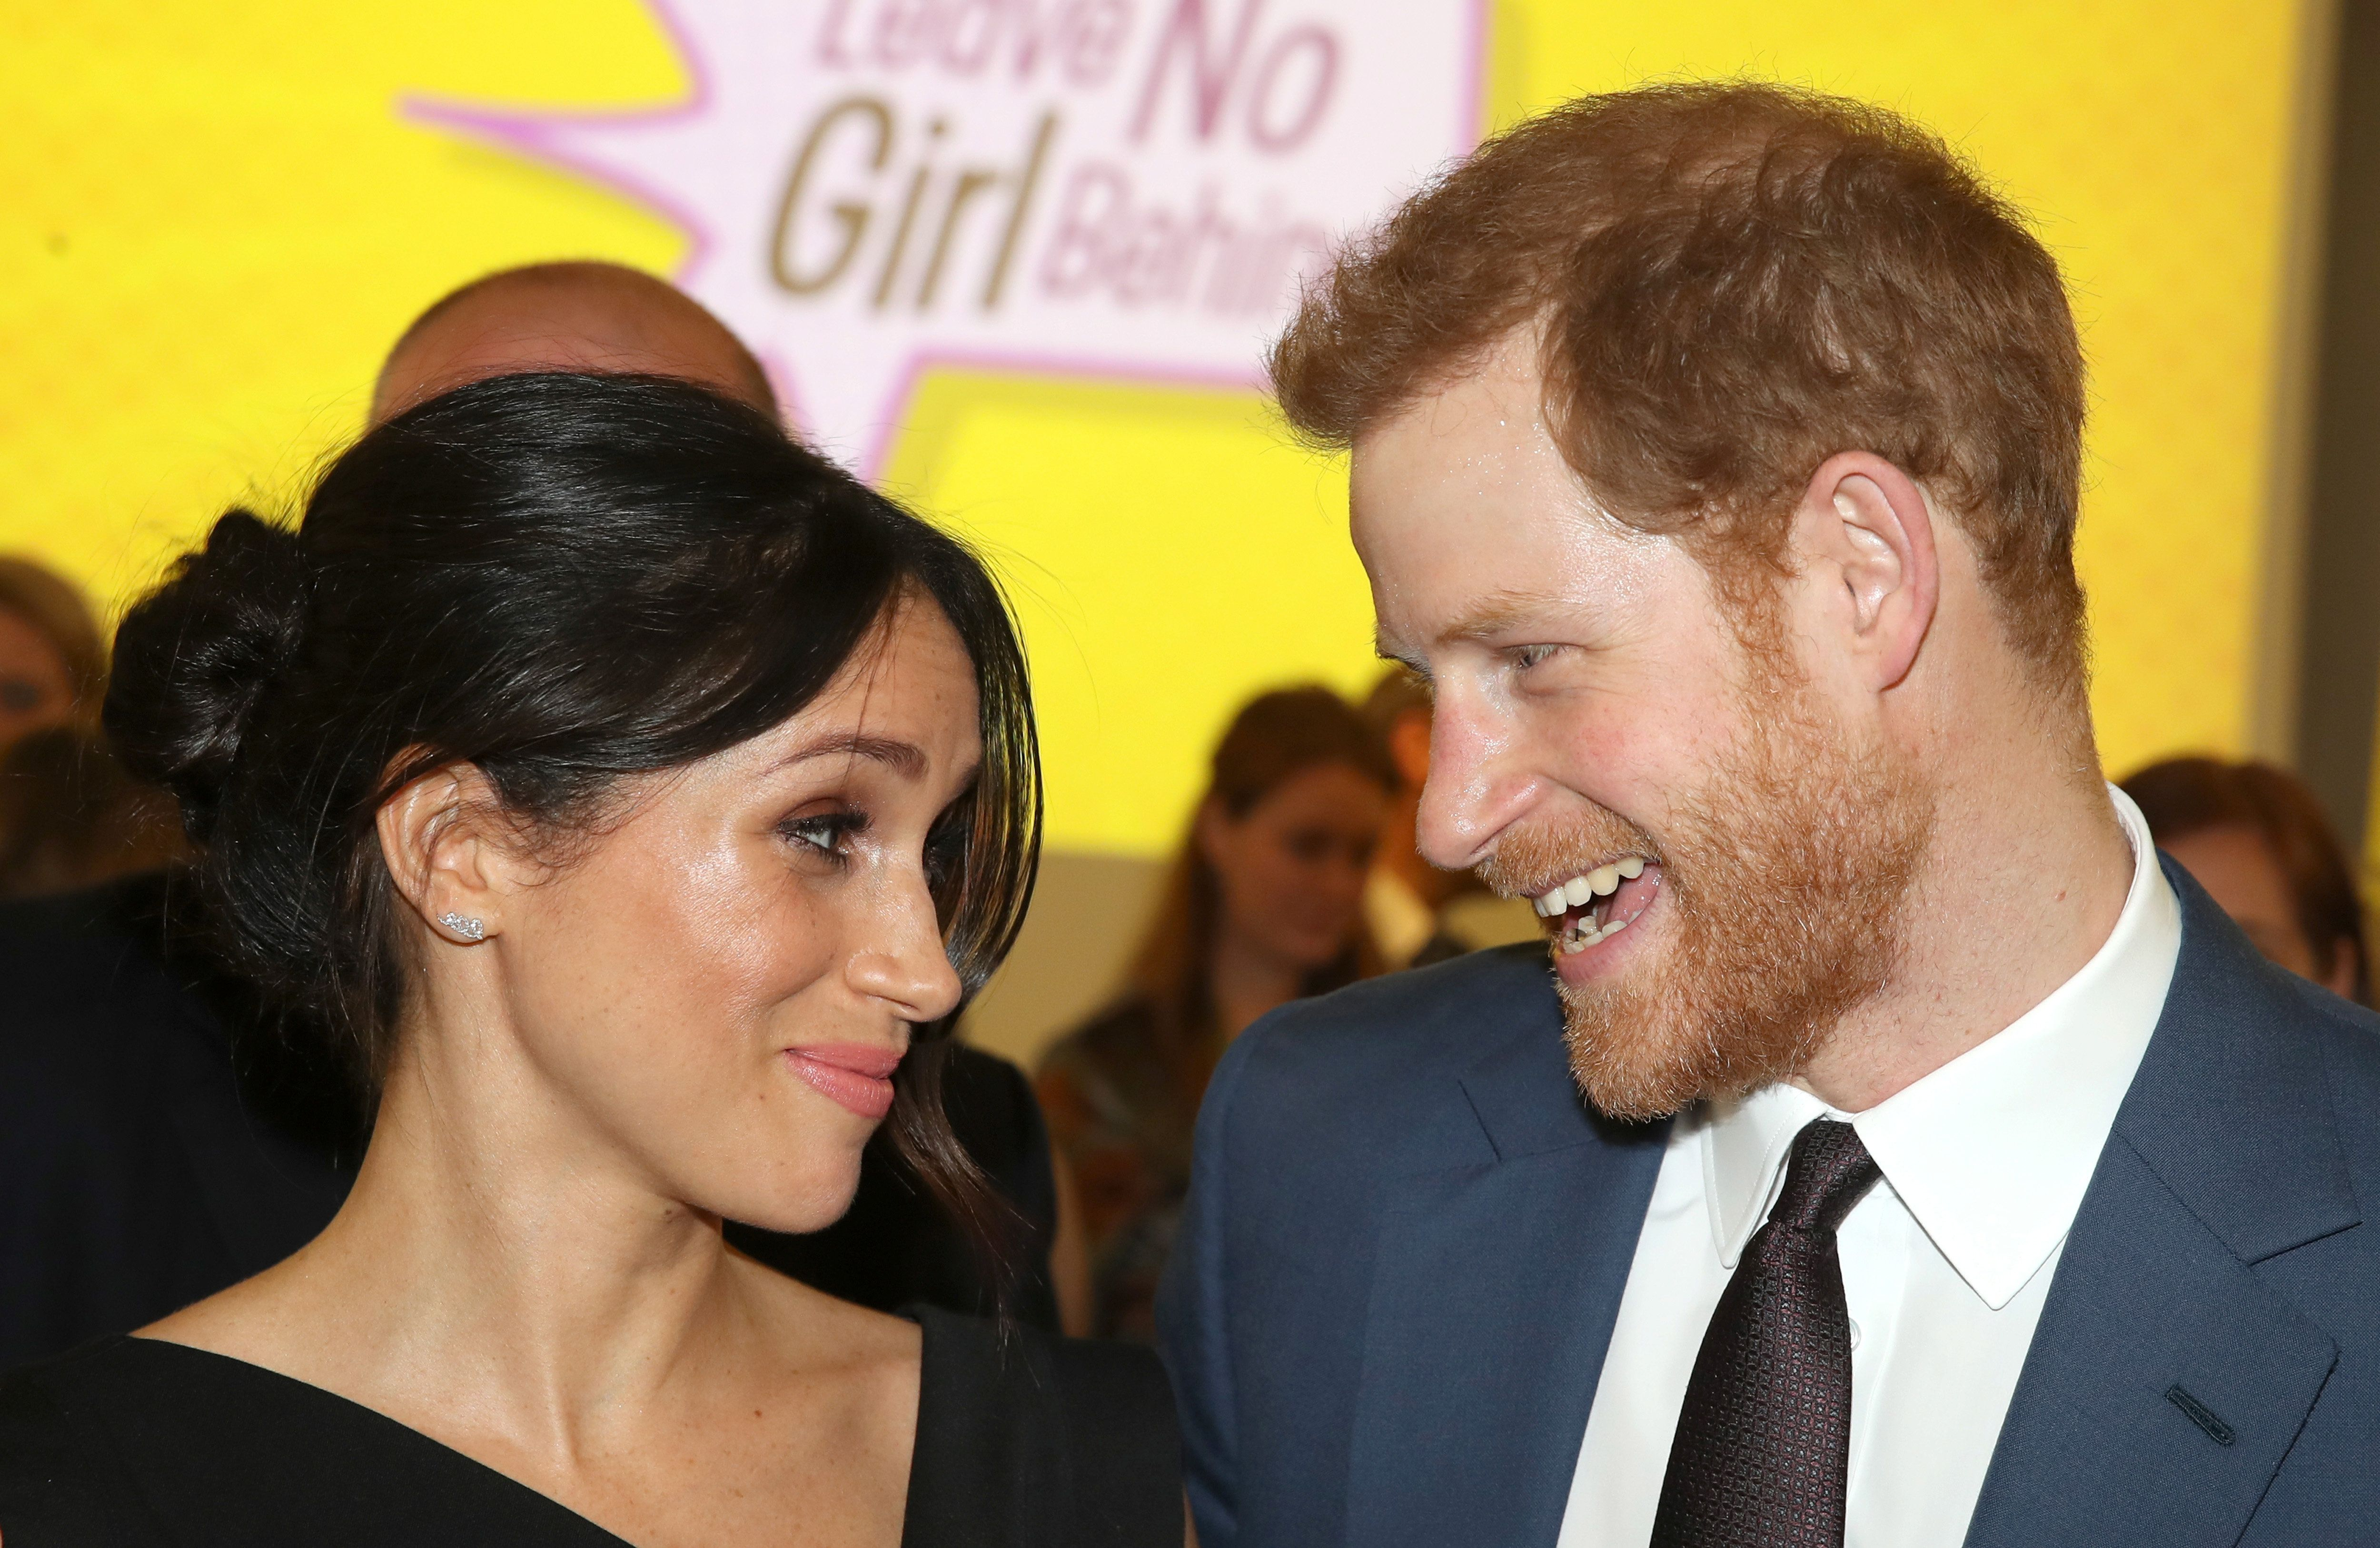 Meghan Markle and Prince Harry attend the Women's Empowerment reception hosted by Foreign Secretary Boris Johnson during the Commonwealth Heads of Government Meeting at the Royal Aeronautical Society on April 19, 2018 in London, England. Chris Jackson/Pool via Reuters